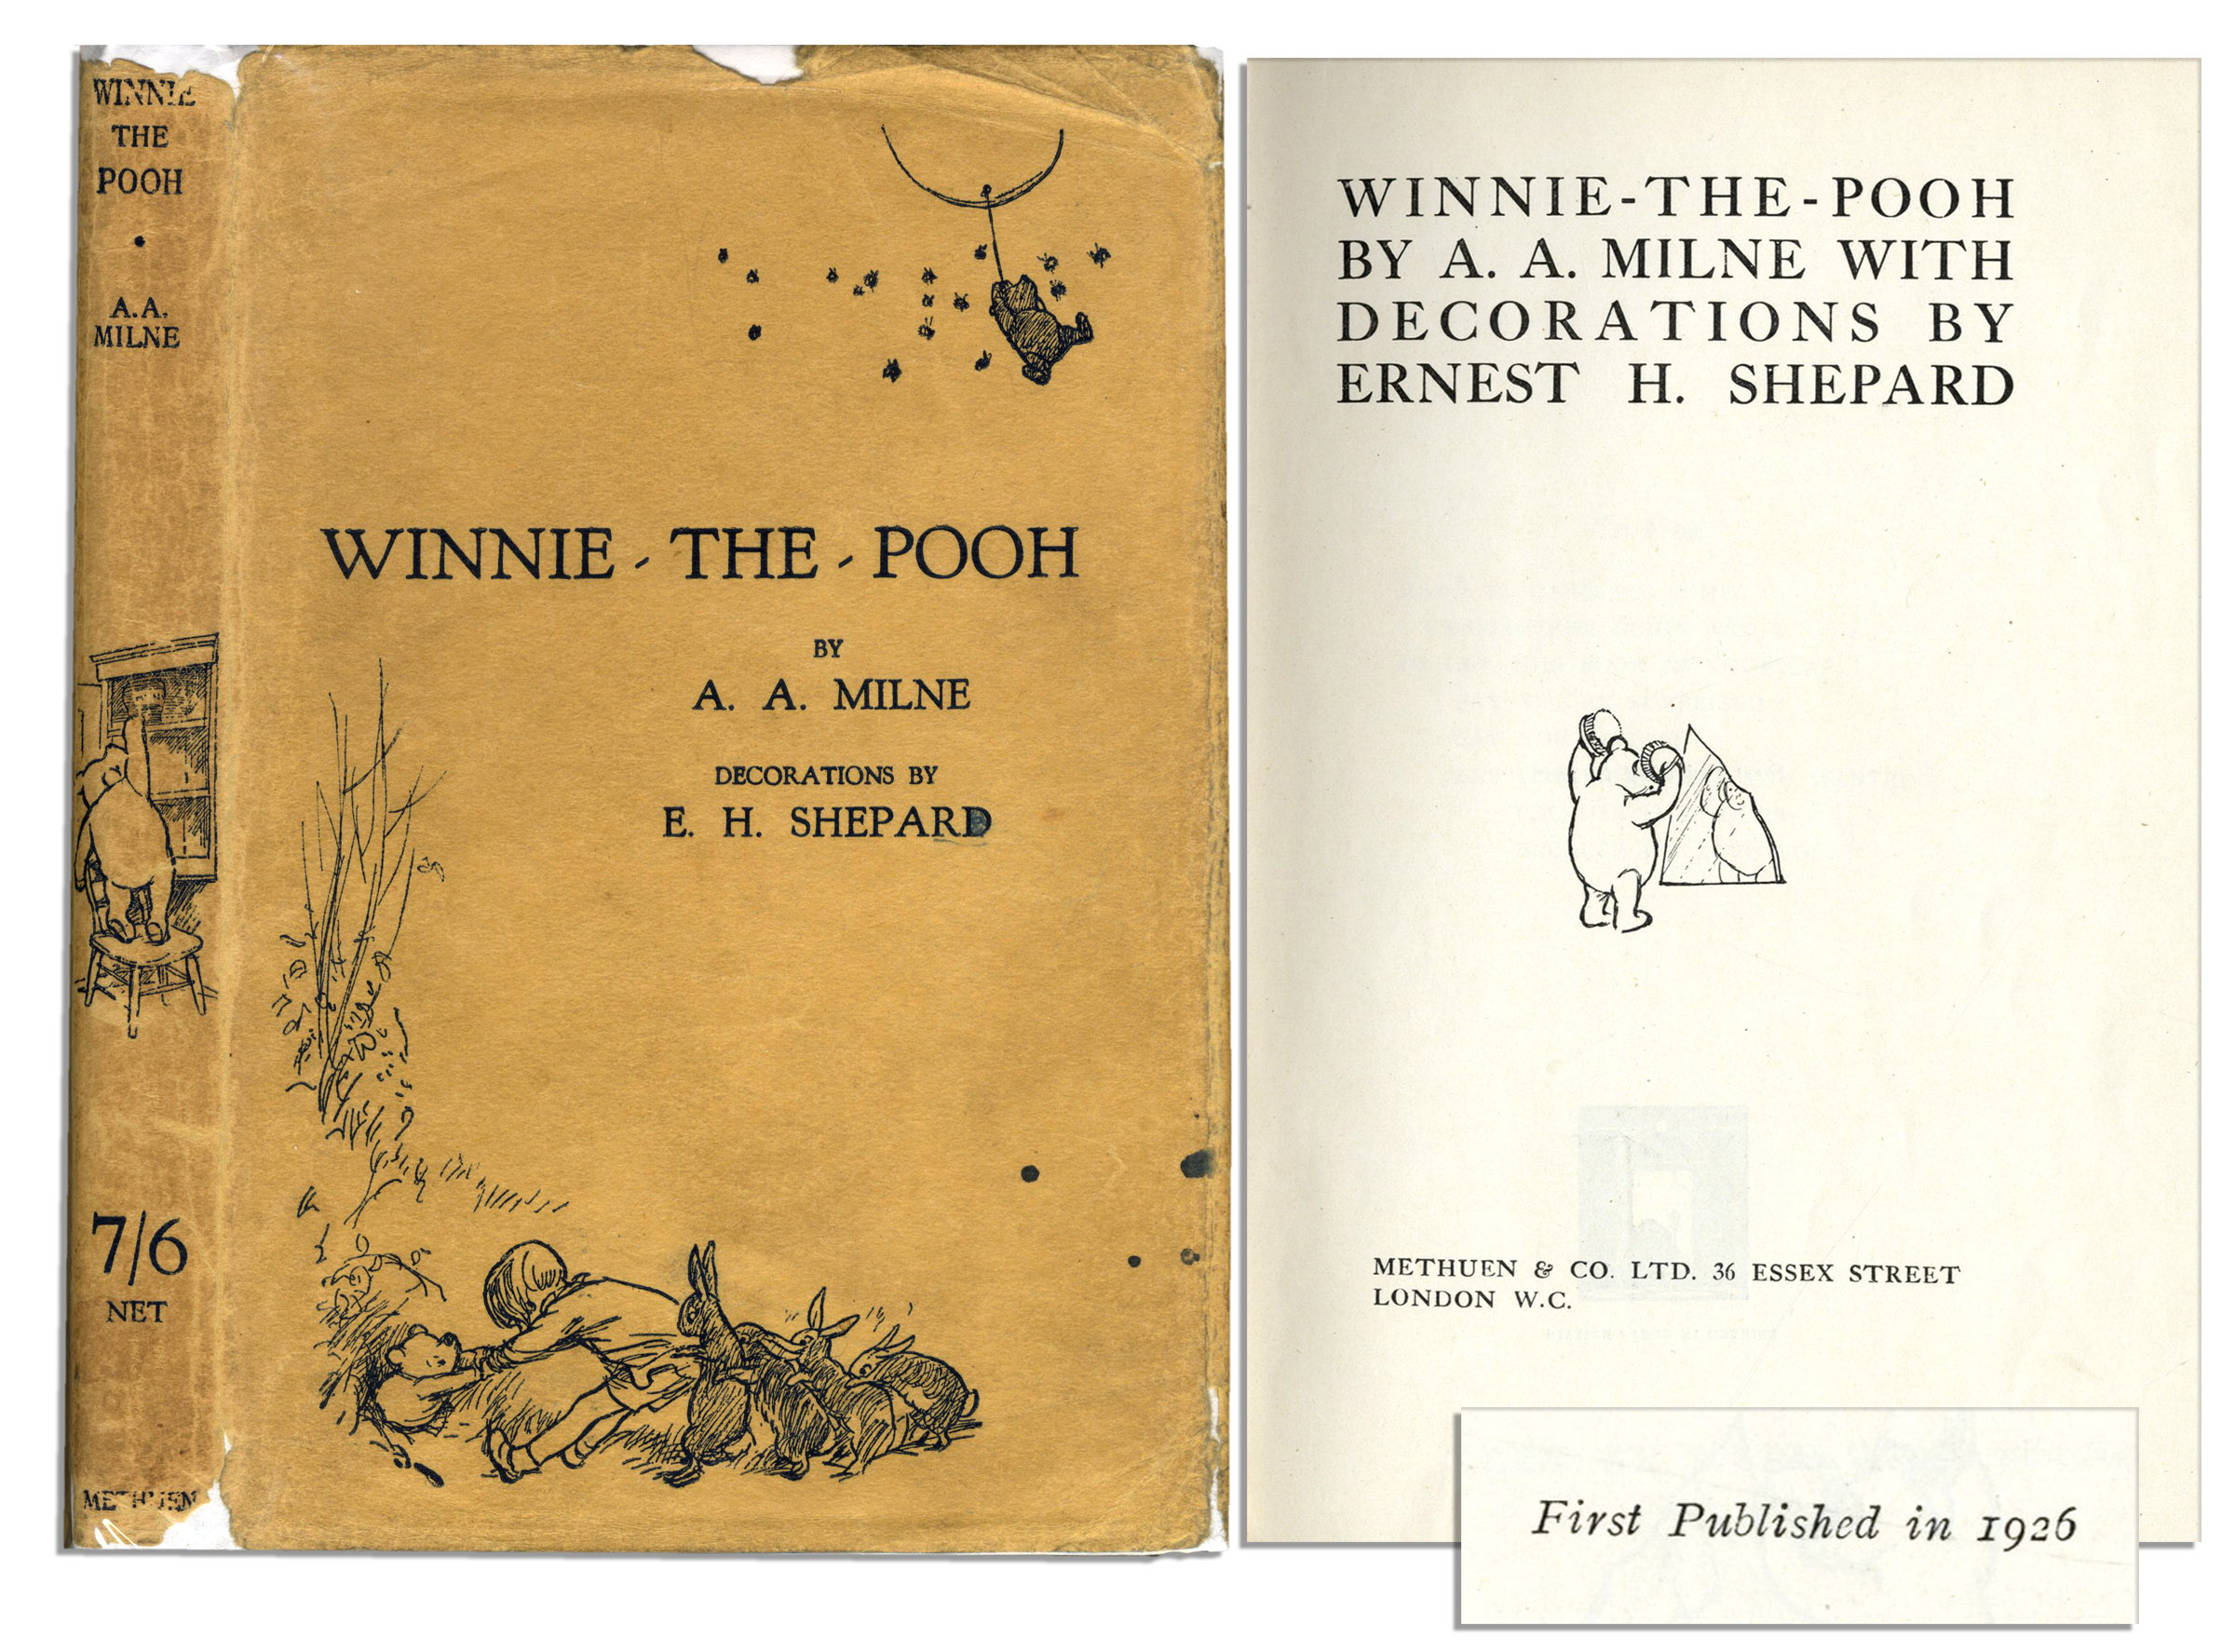 Scarce First Printing of ''Winnie the Pooh'' by A.A. Milne - ...